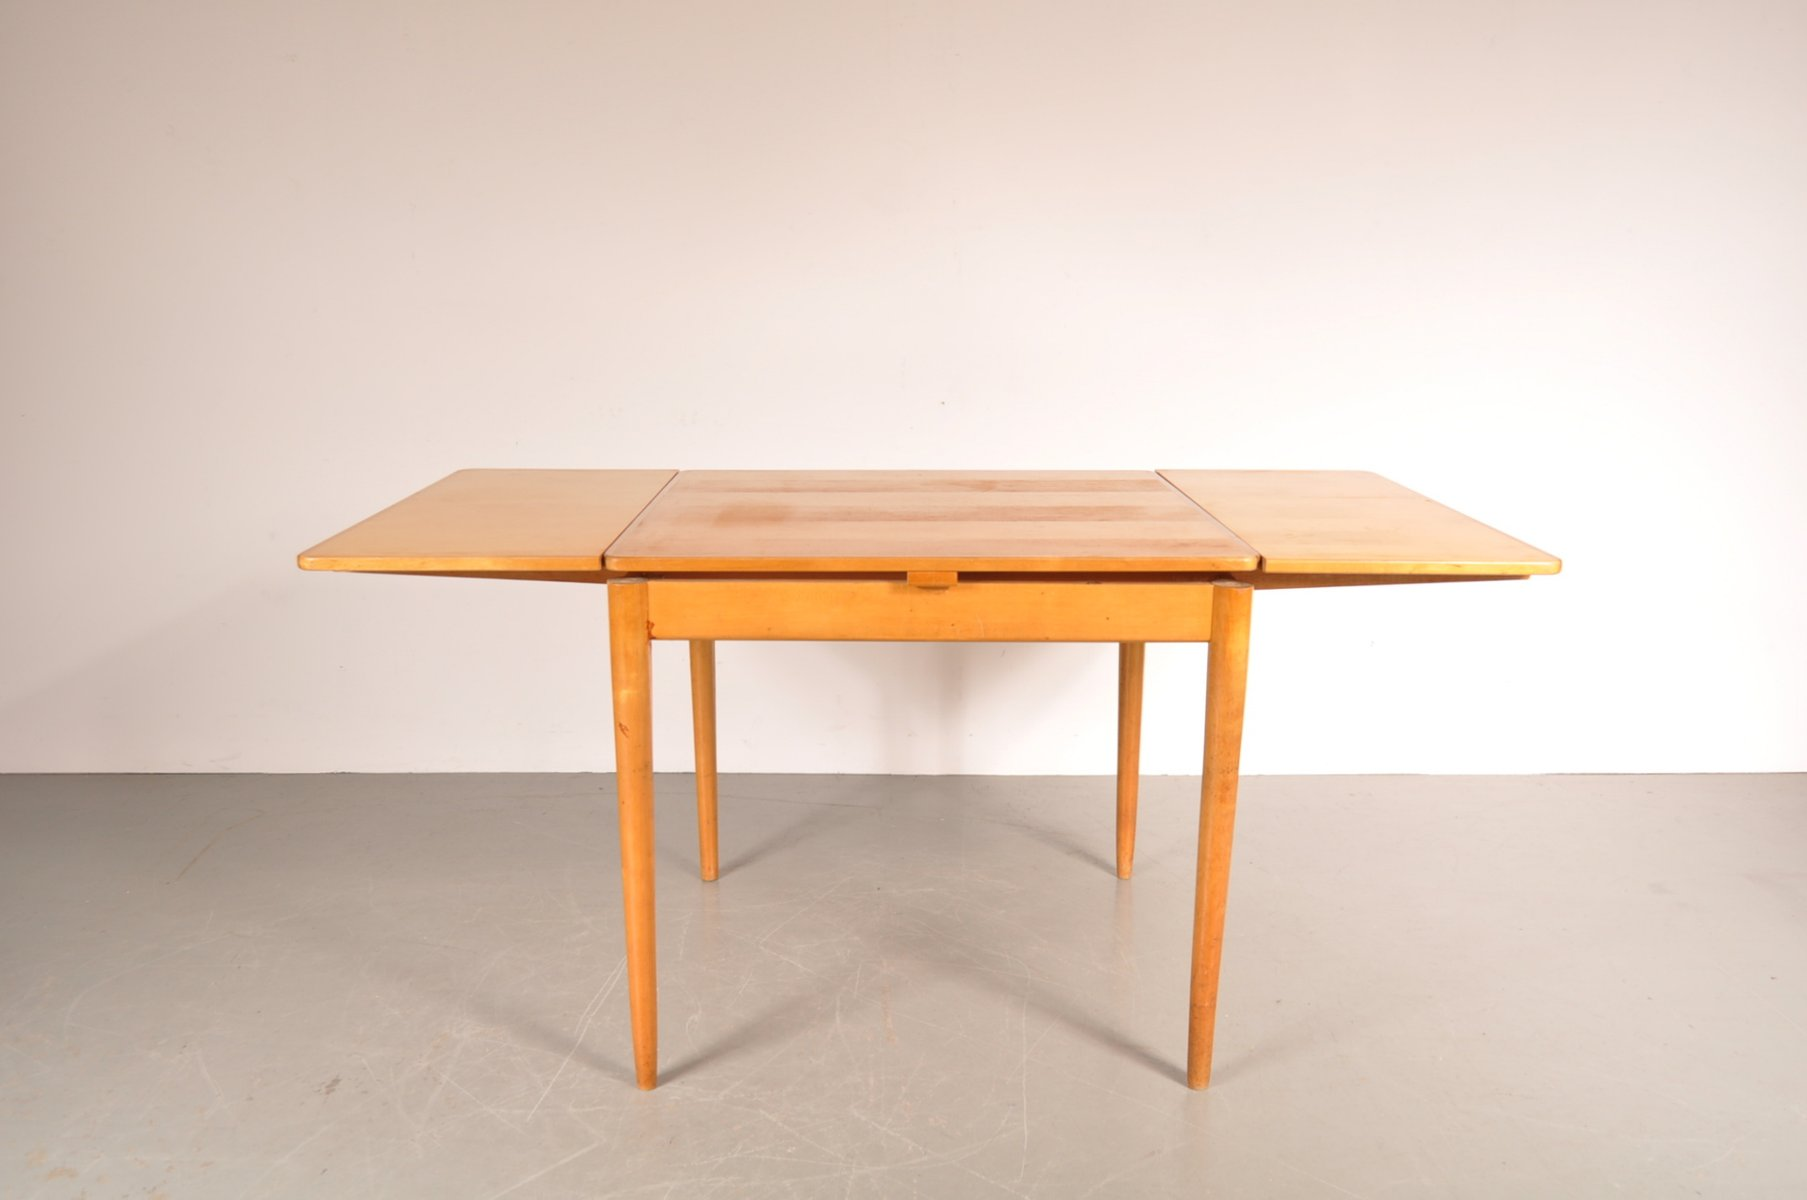 Table salle a manger carree extensible maison design for Table carree de salle a manger